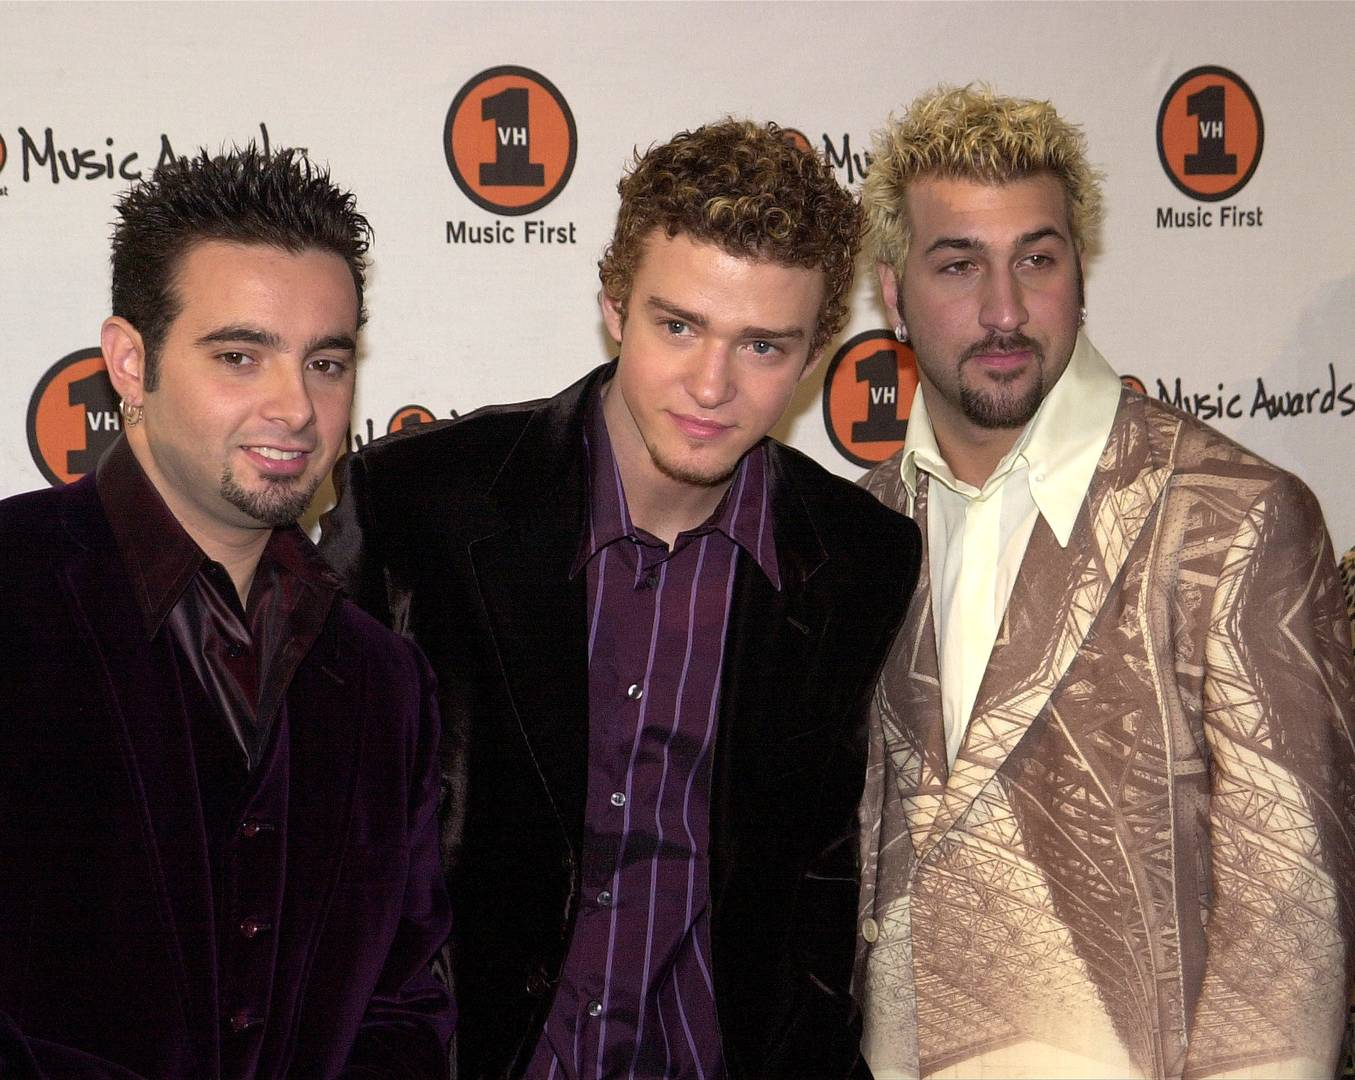 Justin Timberlake Joey Fatone *NSYNC Alcatraz break in prison San Francisco This I Promise You music video shoot accident